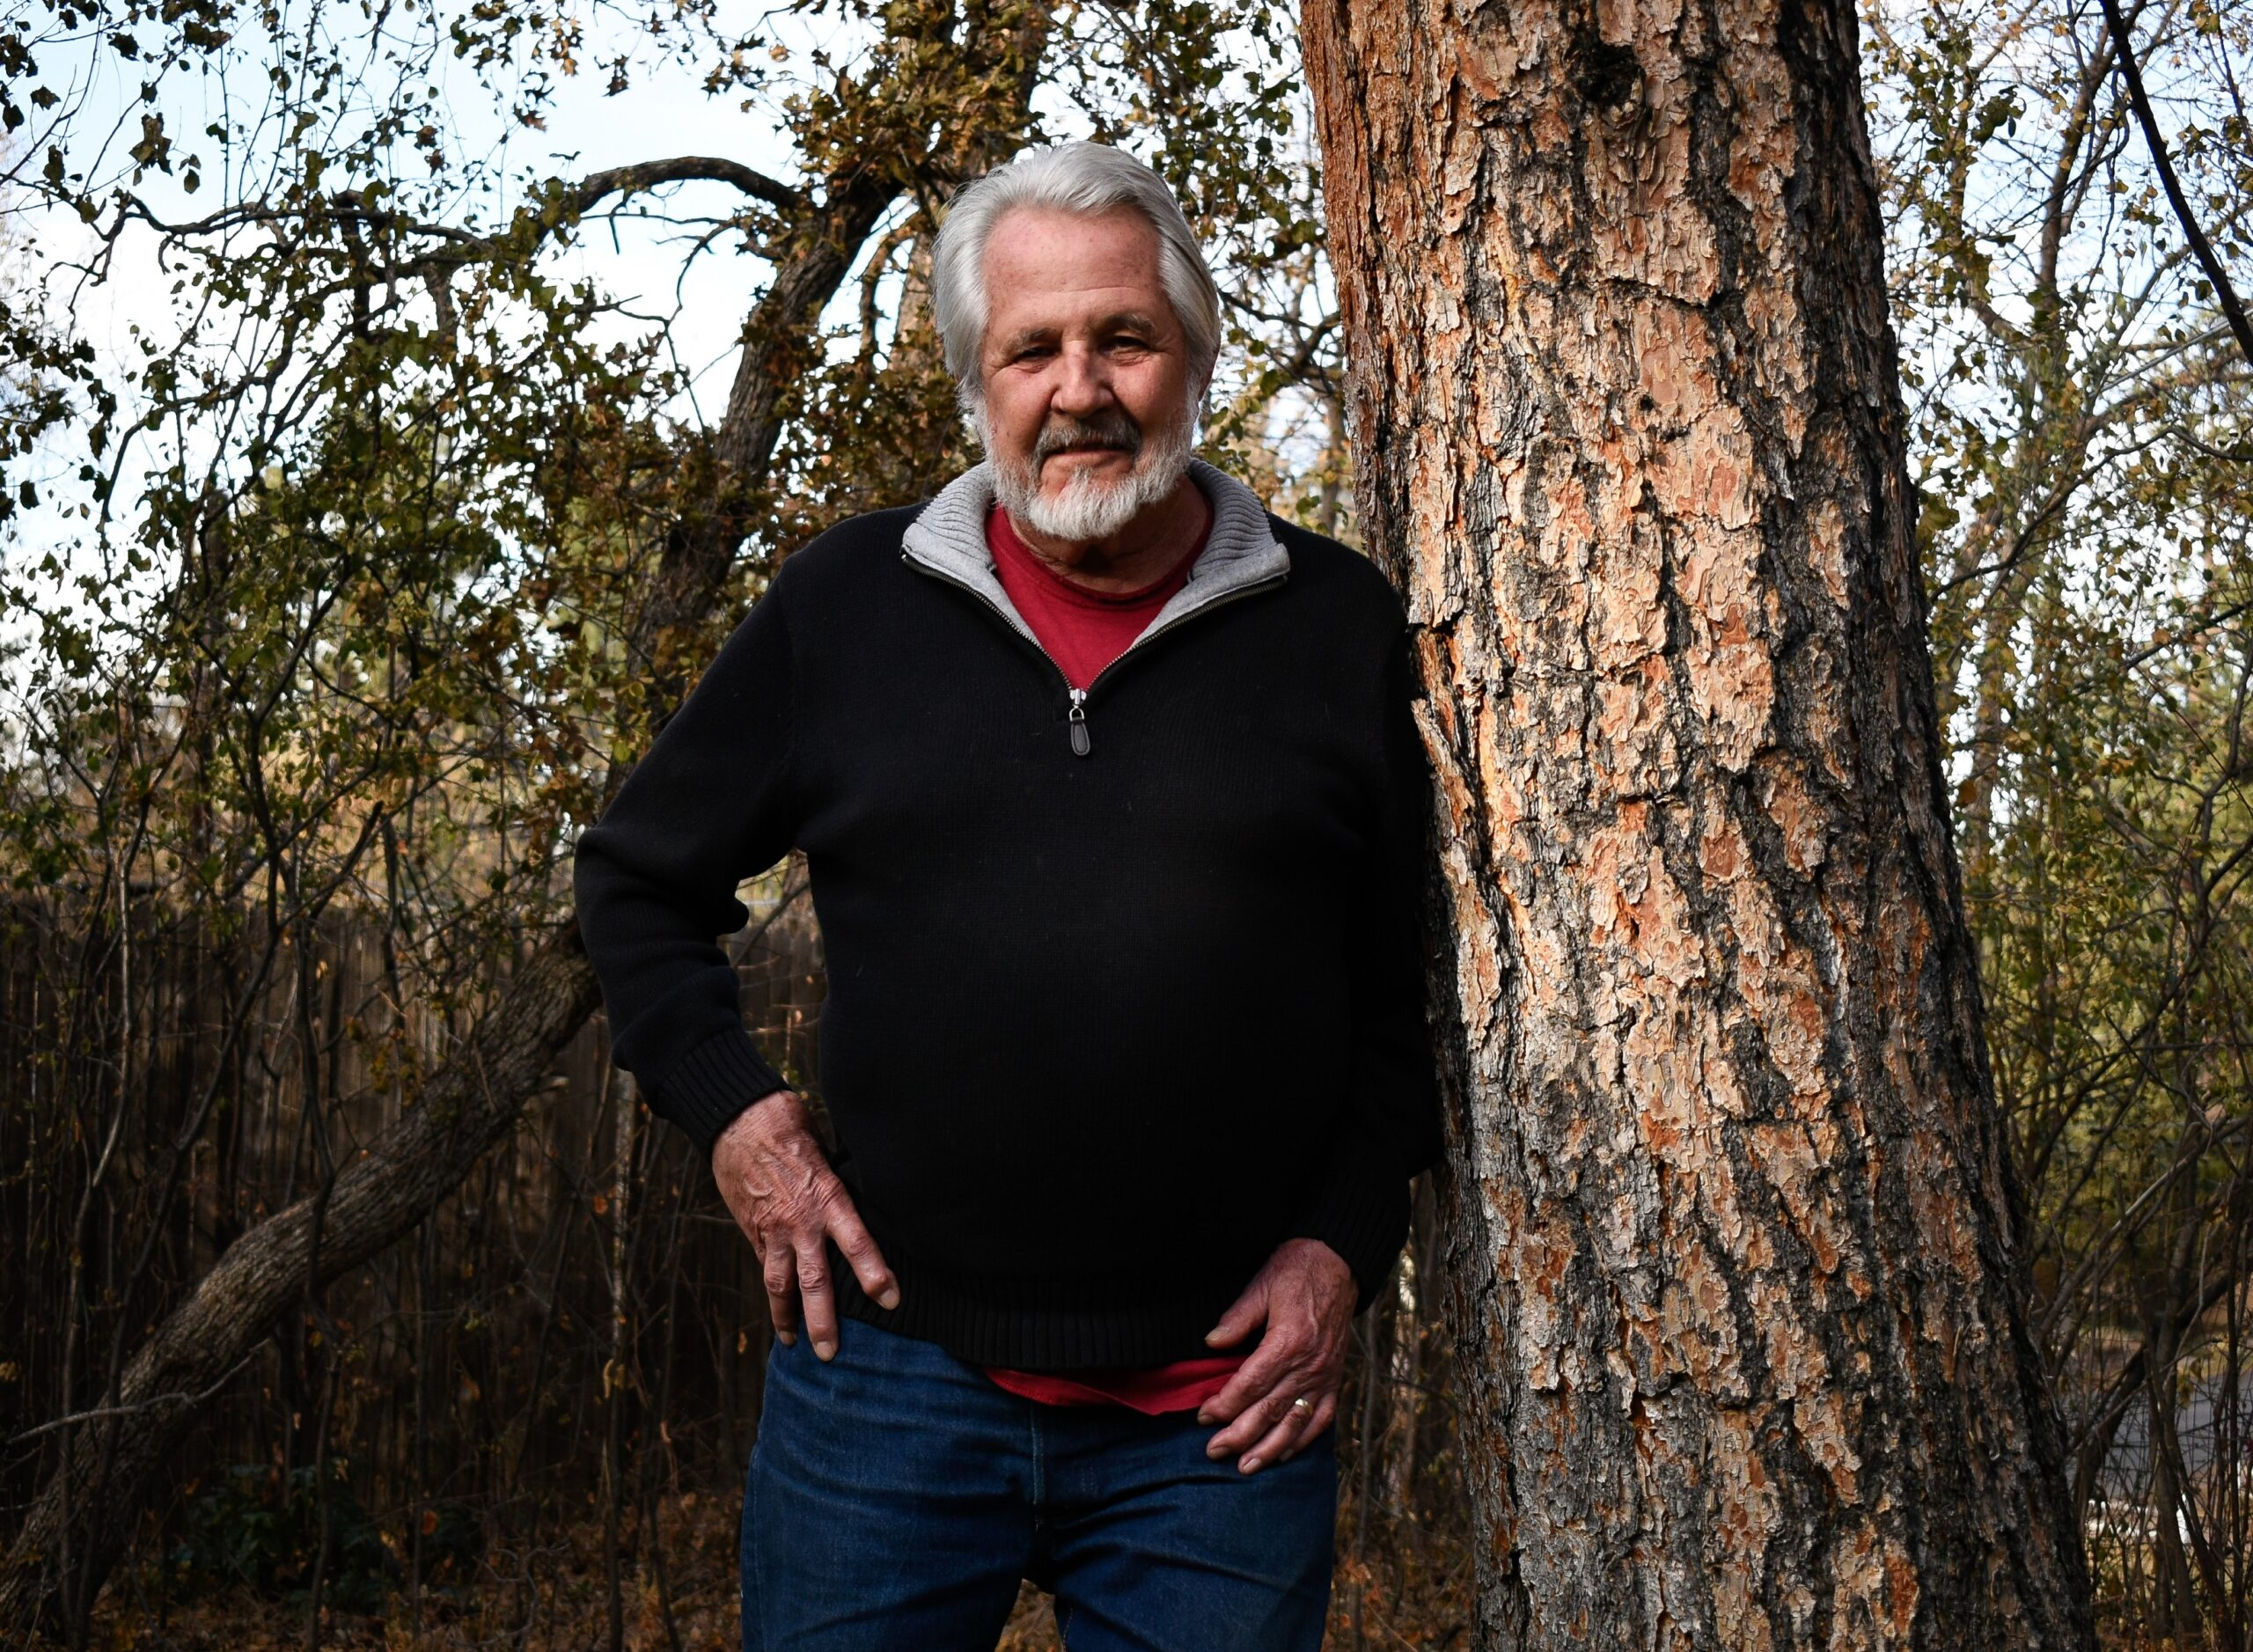 Kent Obee of POPS poses for a photograph on Election Day, Nov. 3, 2020. The measure he backed, Colorado Springs 2B, passed, making it now a requirement for any proposed sale or transfer of city-owned parkland to have voter approval.